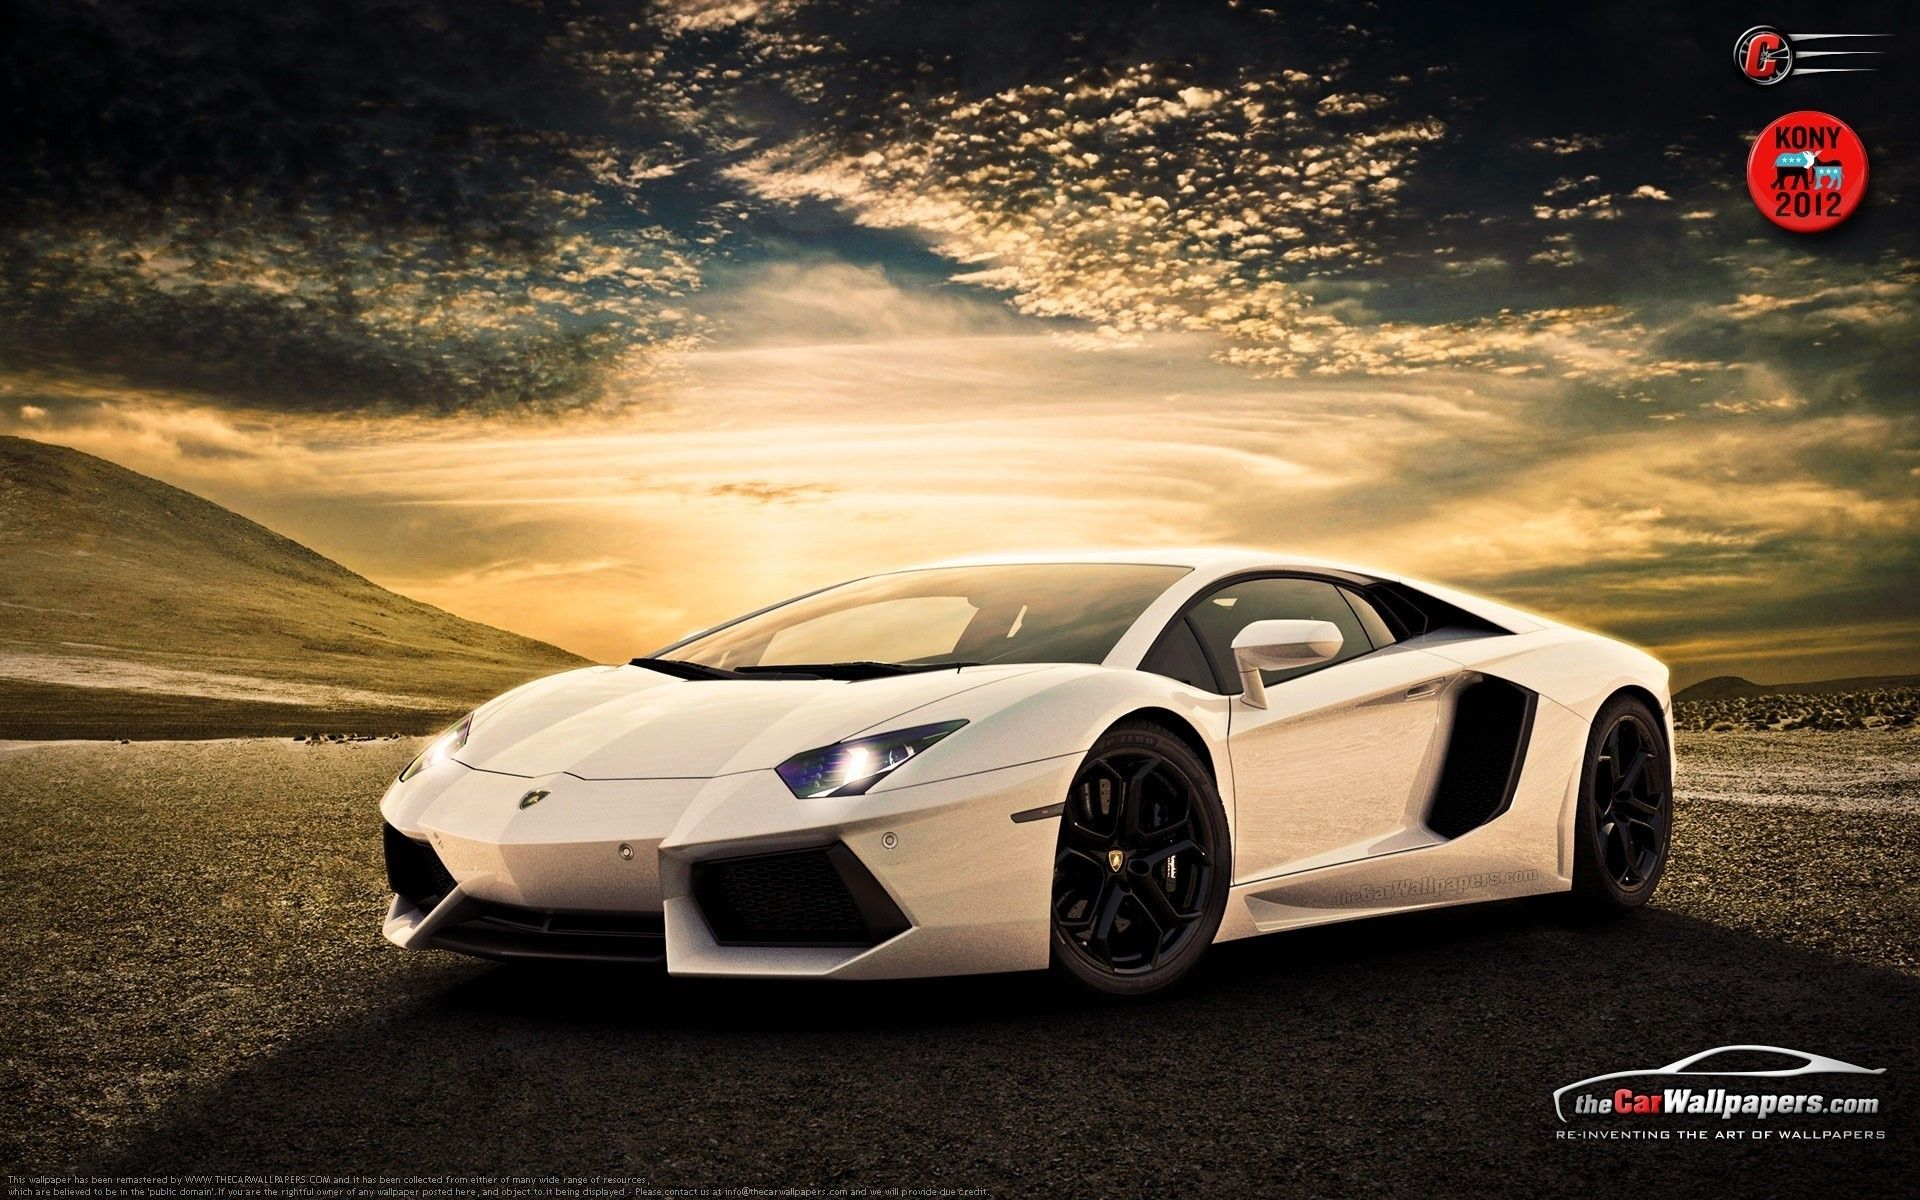 Wallpaper Lamborghini Aventador Cars Photo Manipulation With Hd Car Backgrounds Full Pics Of Pc